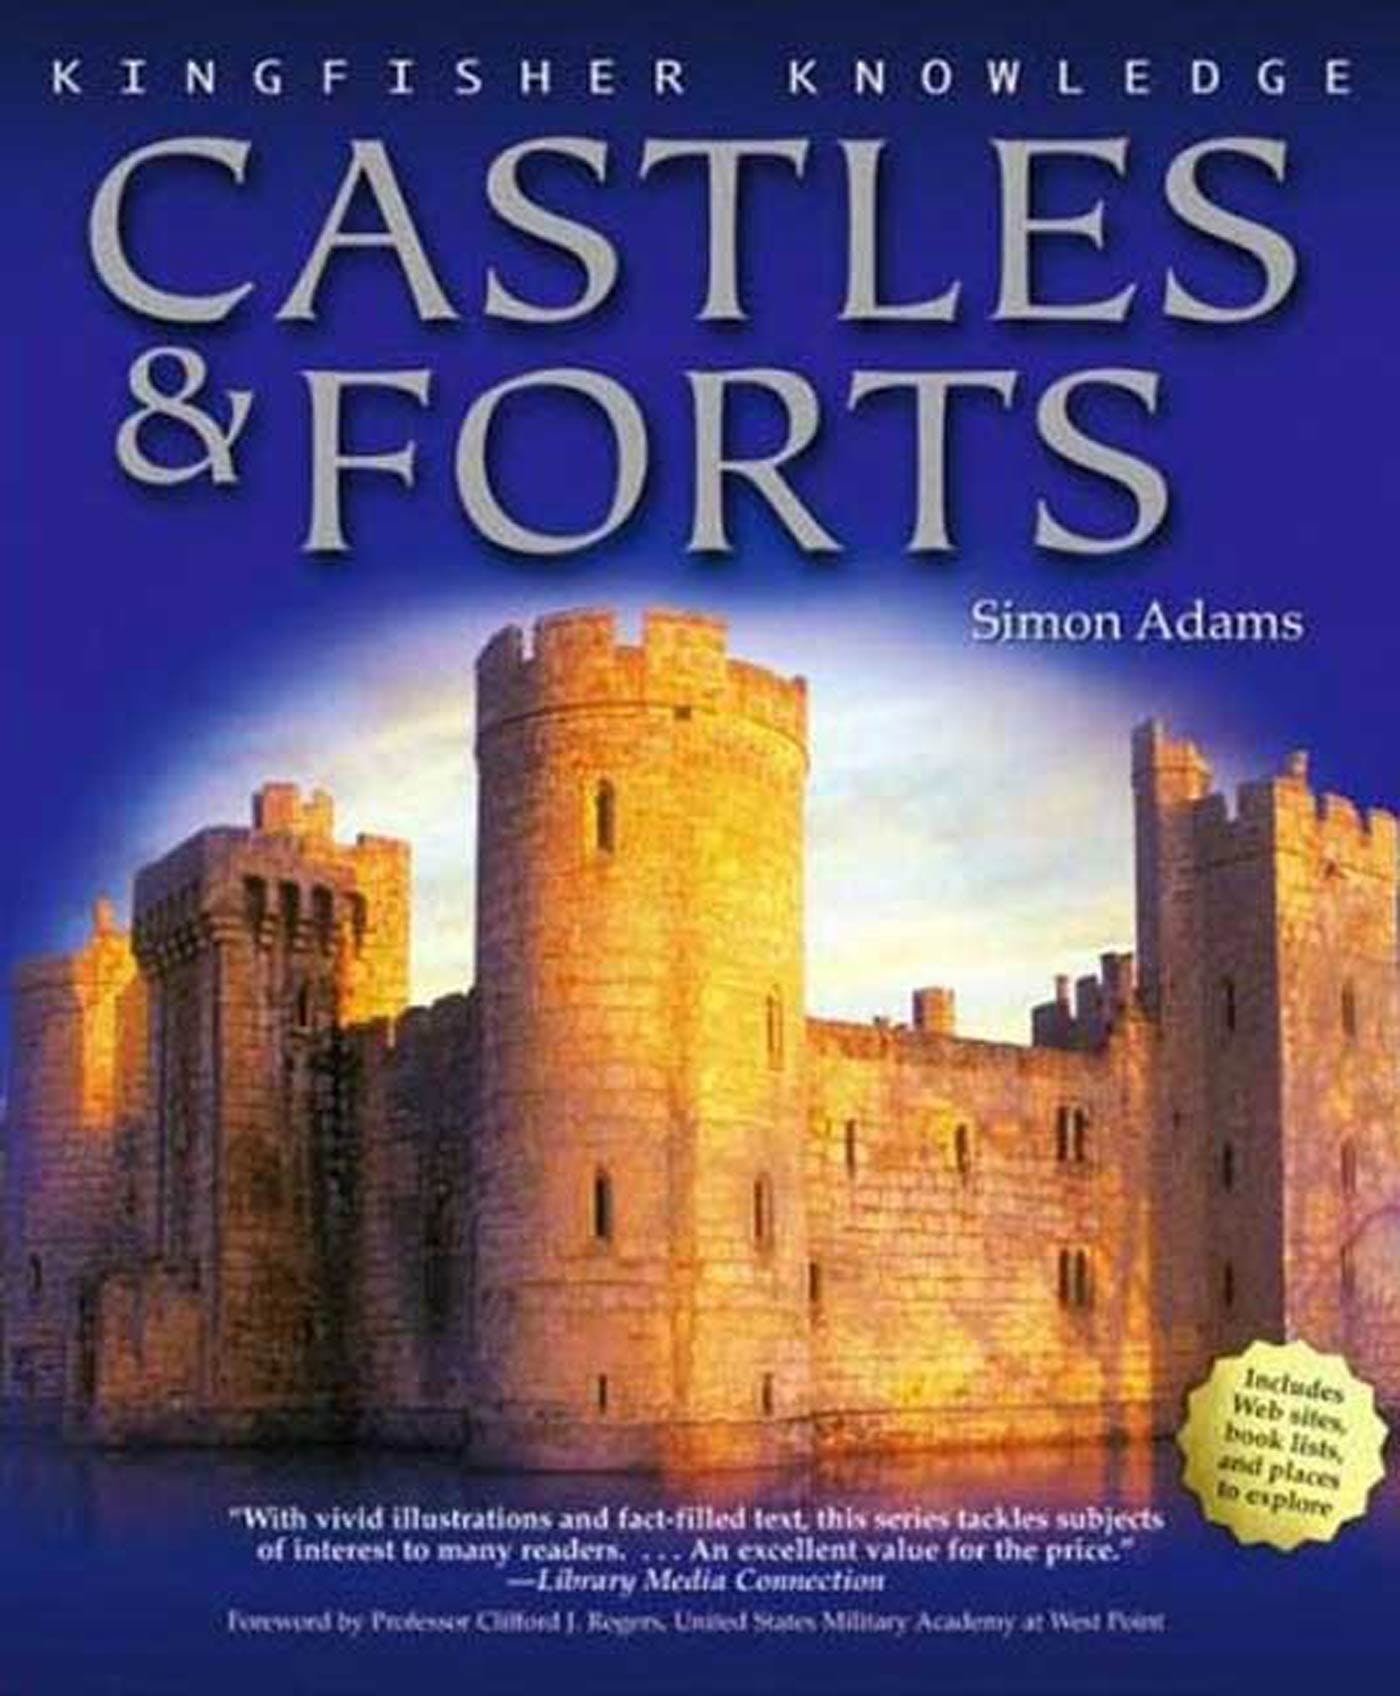 Image of Castles and Forts